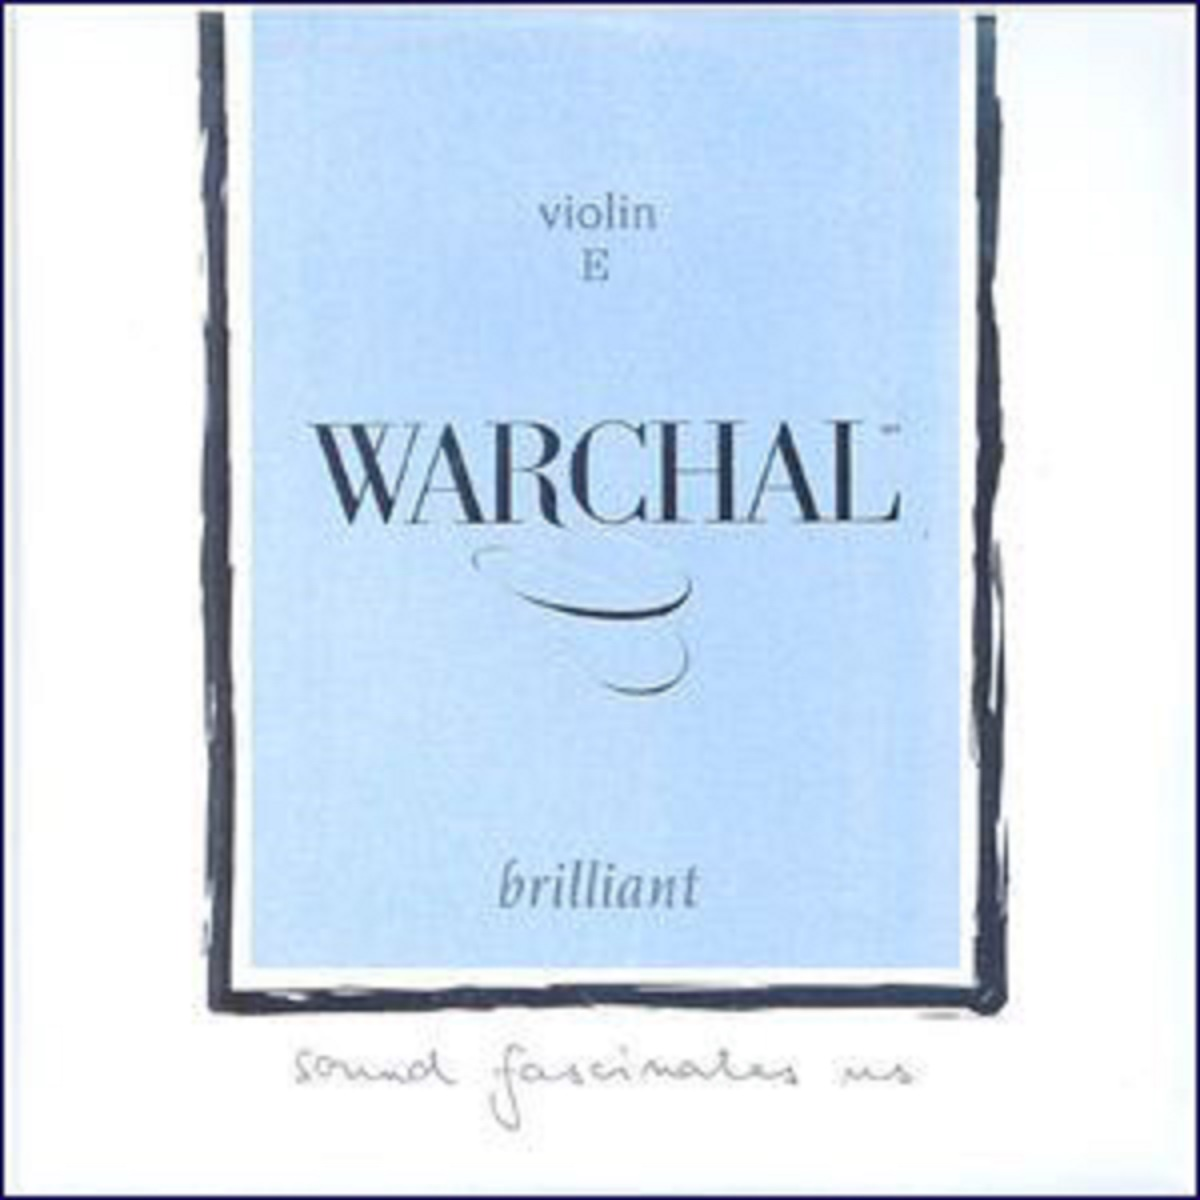 Струна E для скрипки Warchal Brilliant 901L